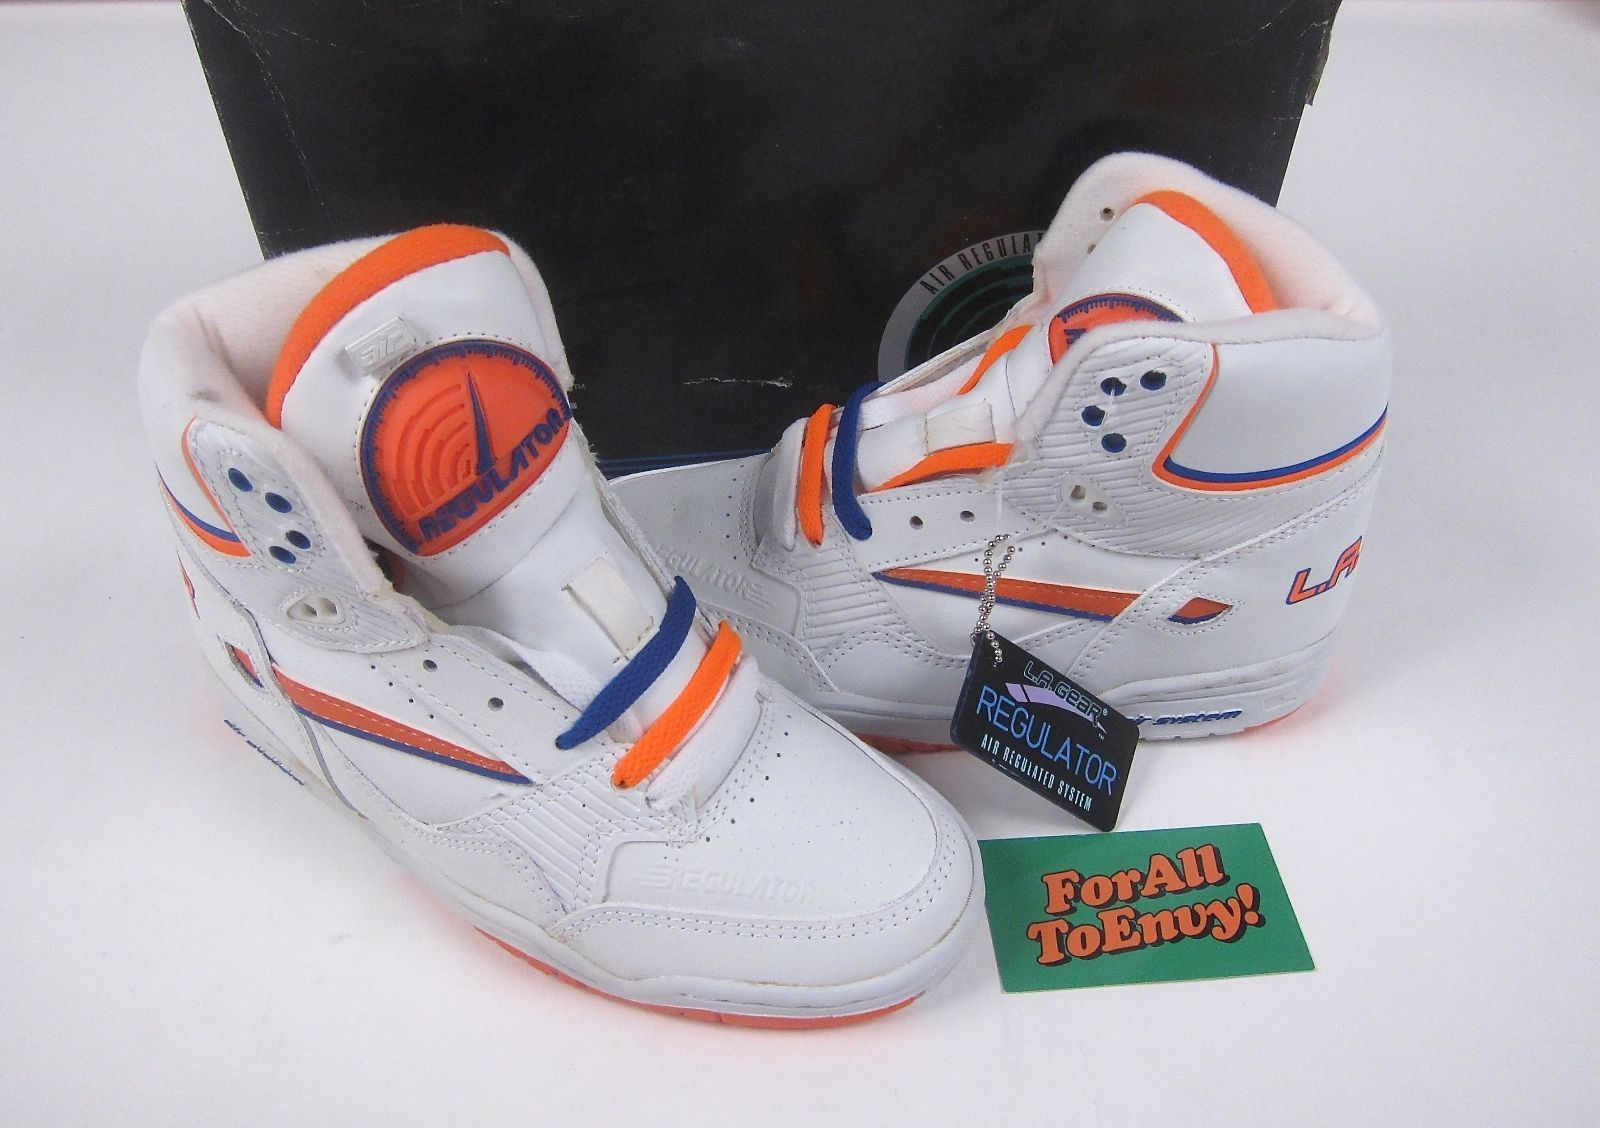 Retro High Top La Gear Shoes